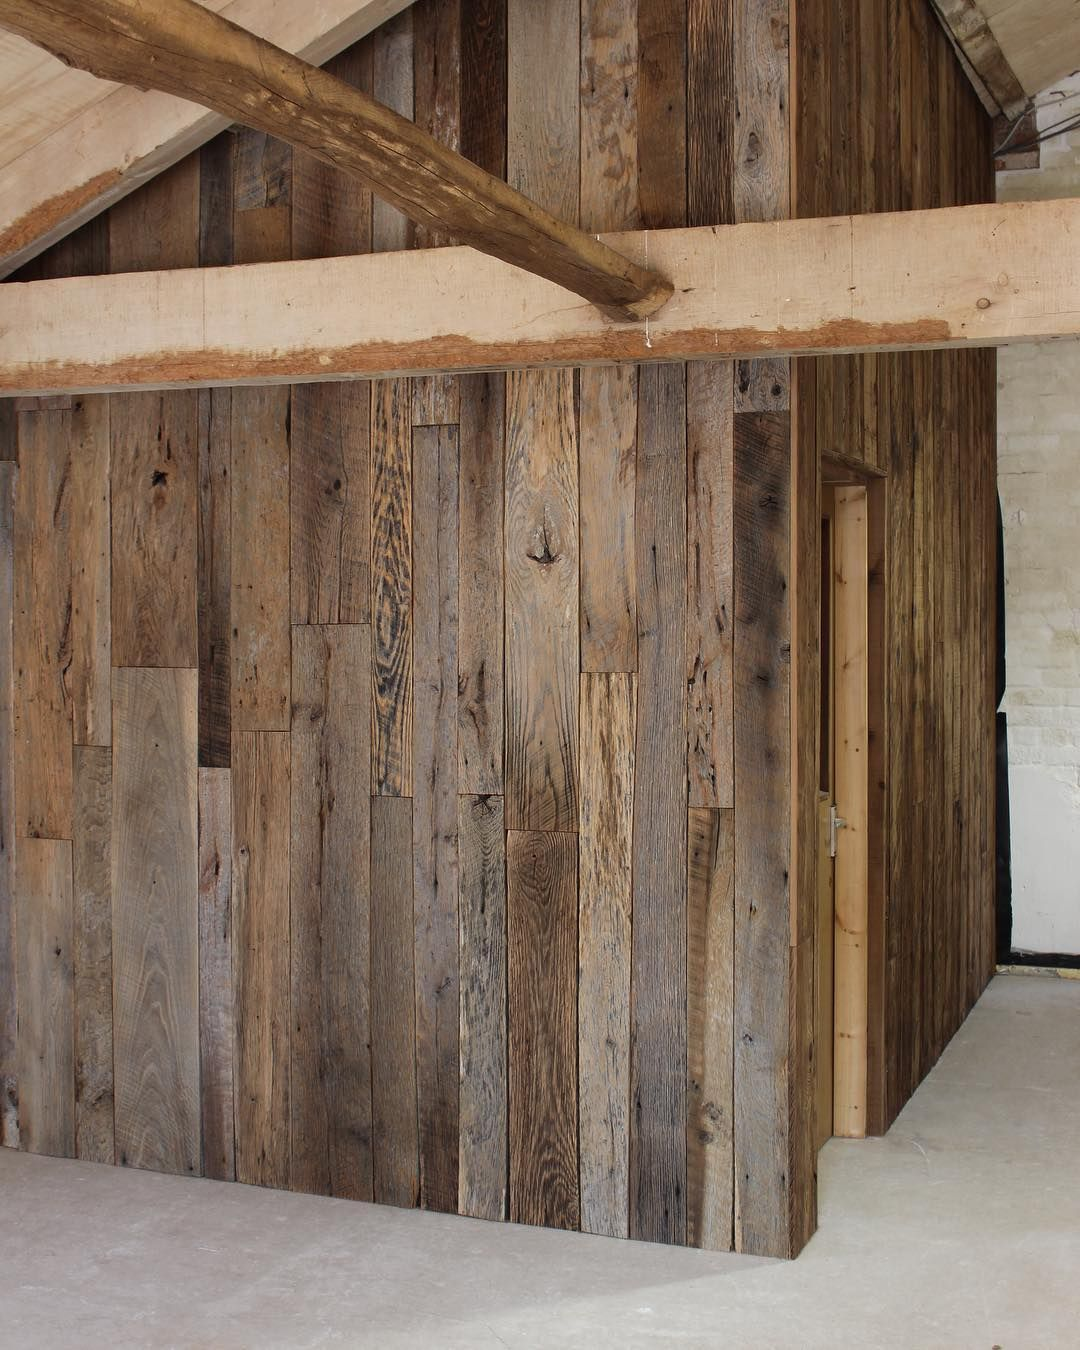 Reclaimed Wood Cladding Interior Wood Wall Ideas Our Beautiful Reclaimed Barn Siding Makes The Perfe Wood Cladding Interior Timber Feature Wall Wood Cladding